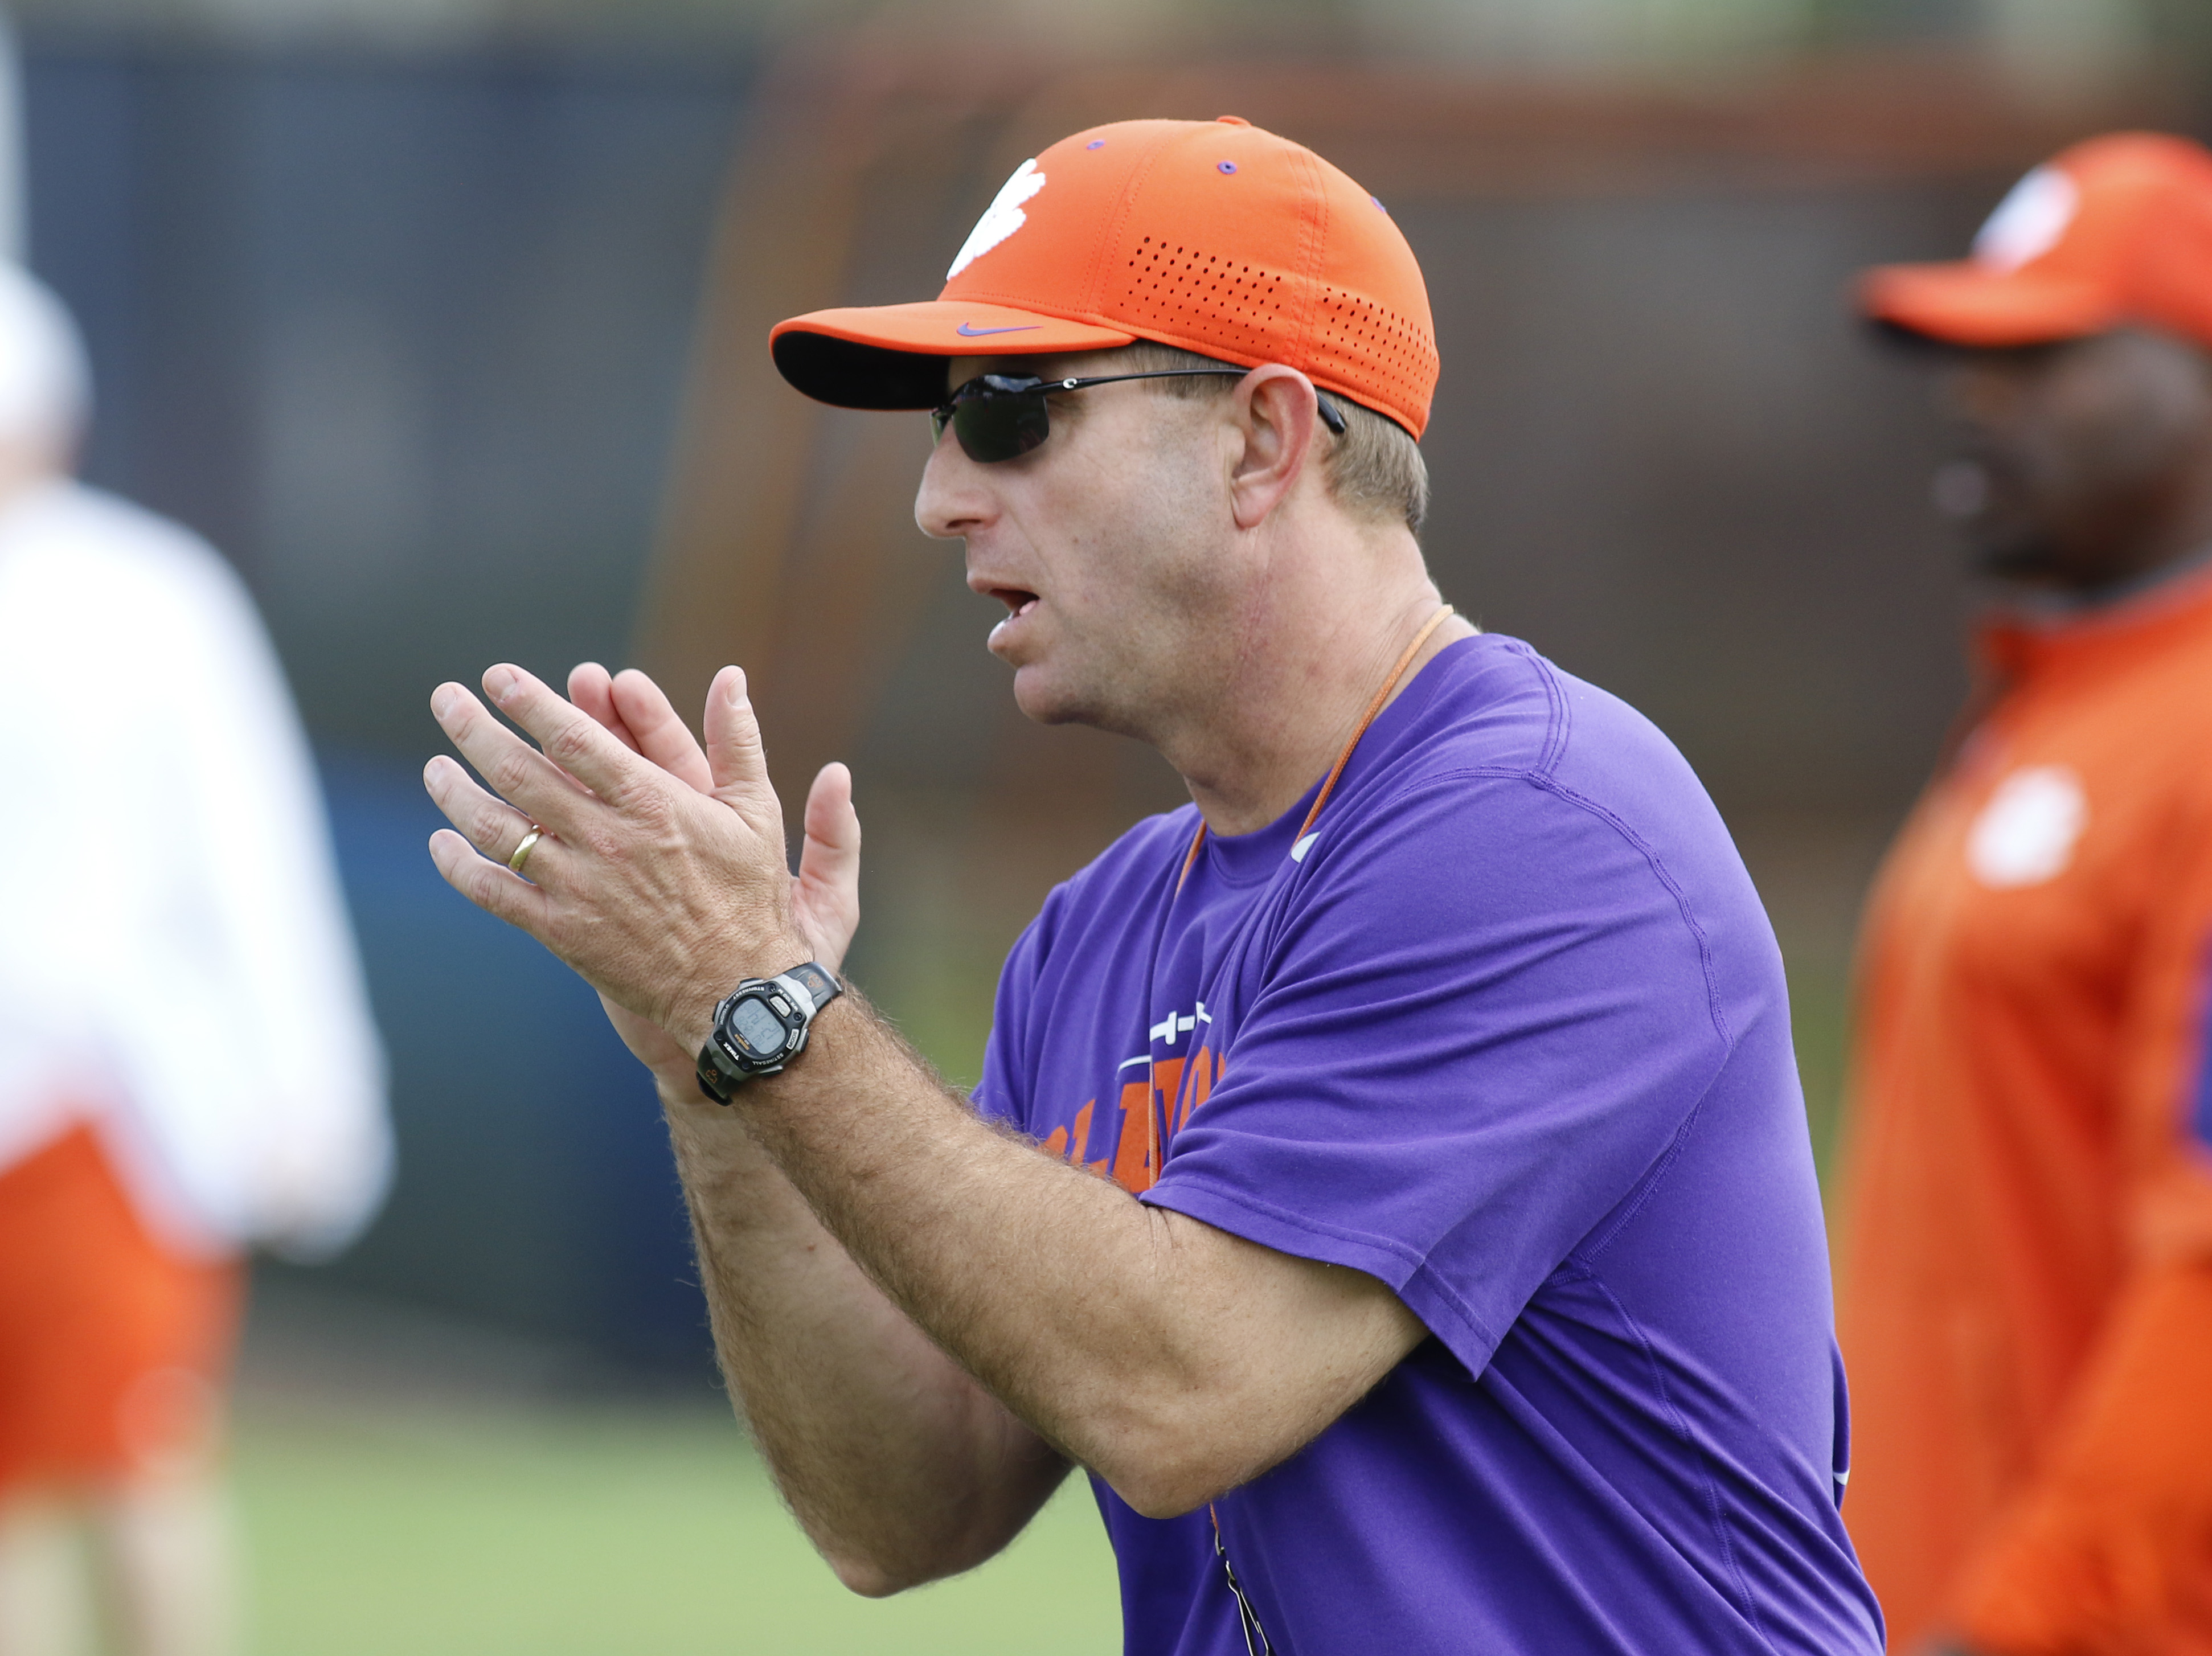 Clemson head coach Dabo Swinney reacts during NCAA college football practice Monday, Dec. 28, 2015, in Davie, Fla. Clemson is scheduled to play Oklahoma in the Orange Bowl on New Year's Eve. (AP Photo/Joe Skipper)